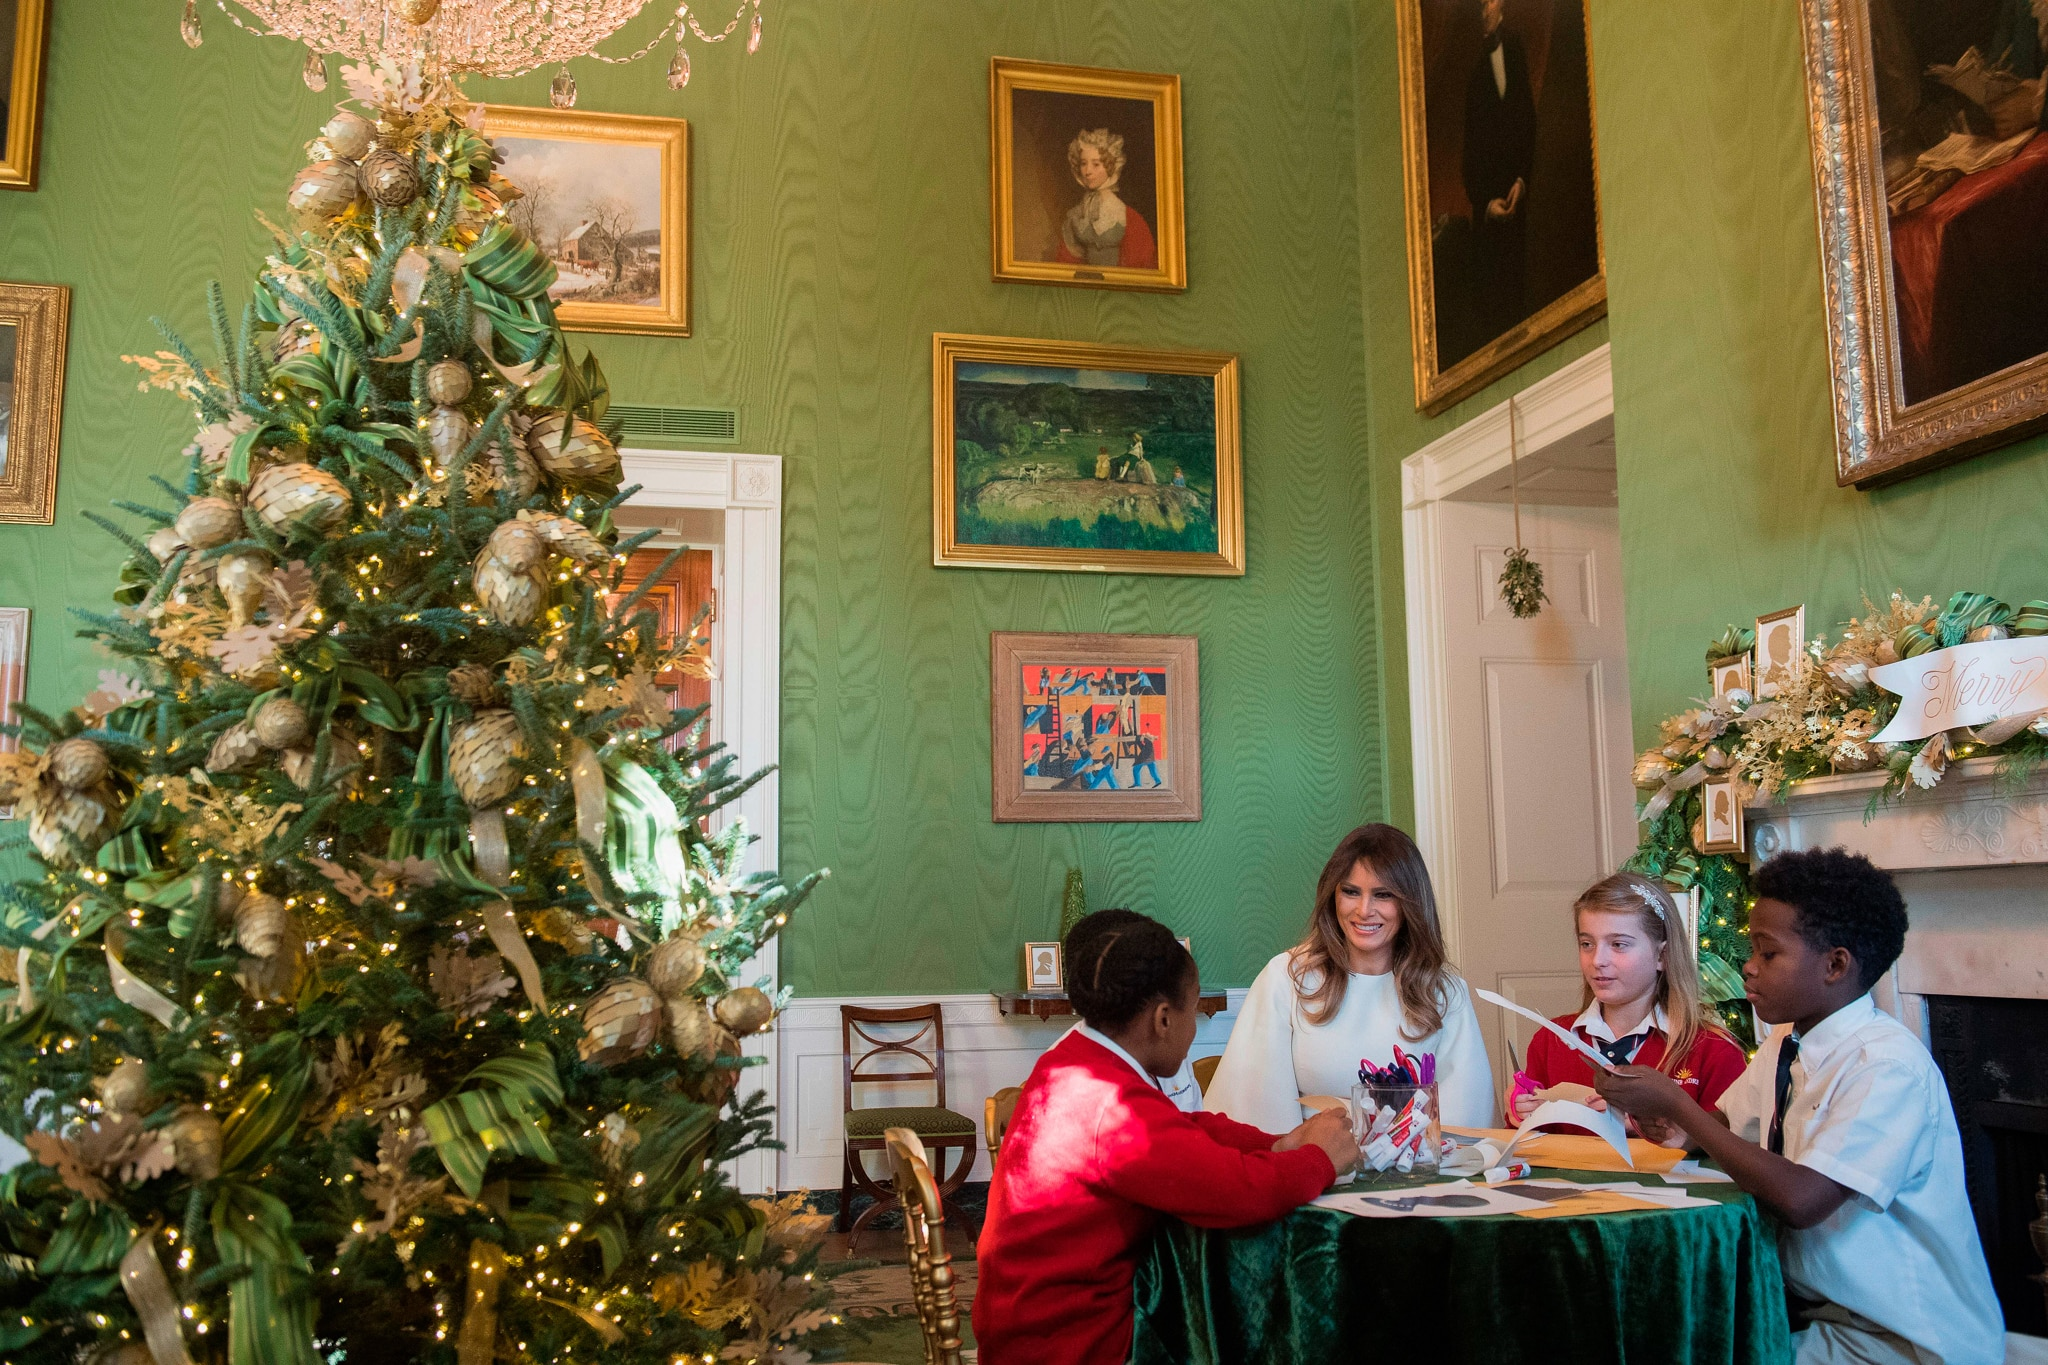 Christmas tree in a green room where four people are sitting at a table (© Saul Loeb/AFP/Getty Images)